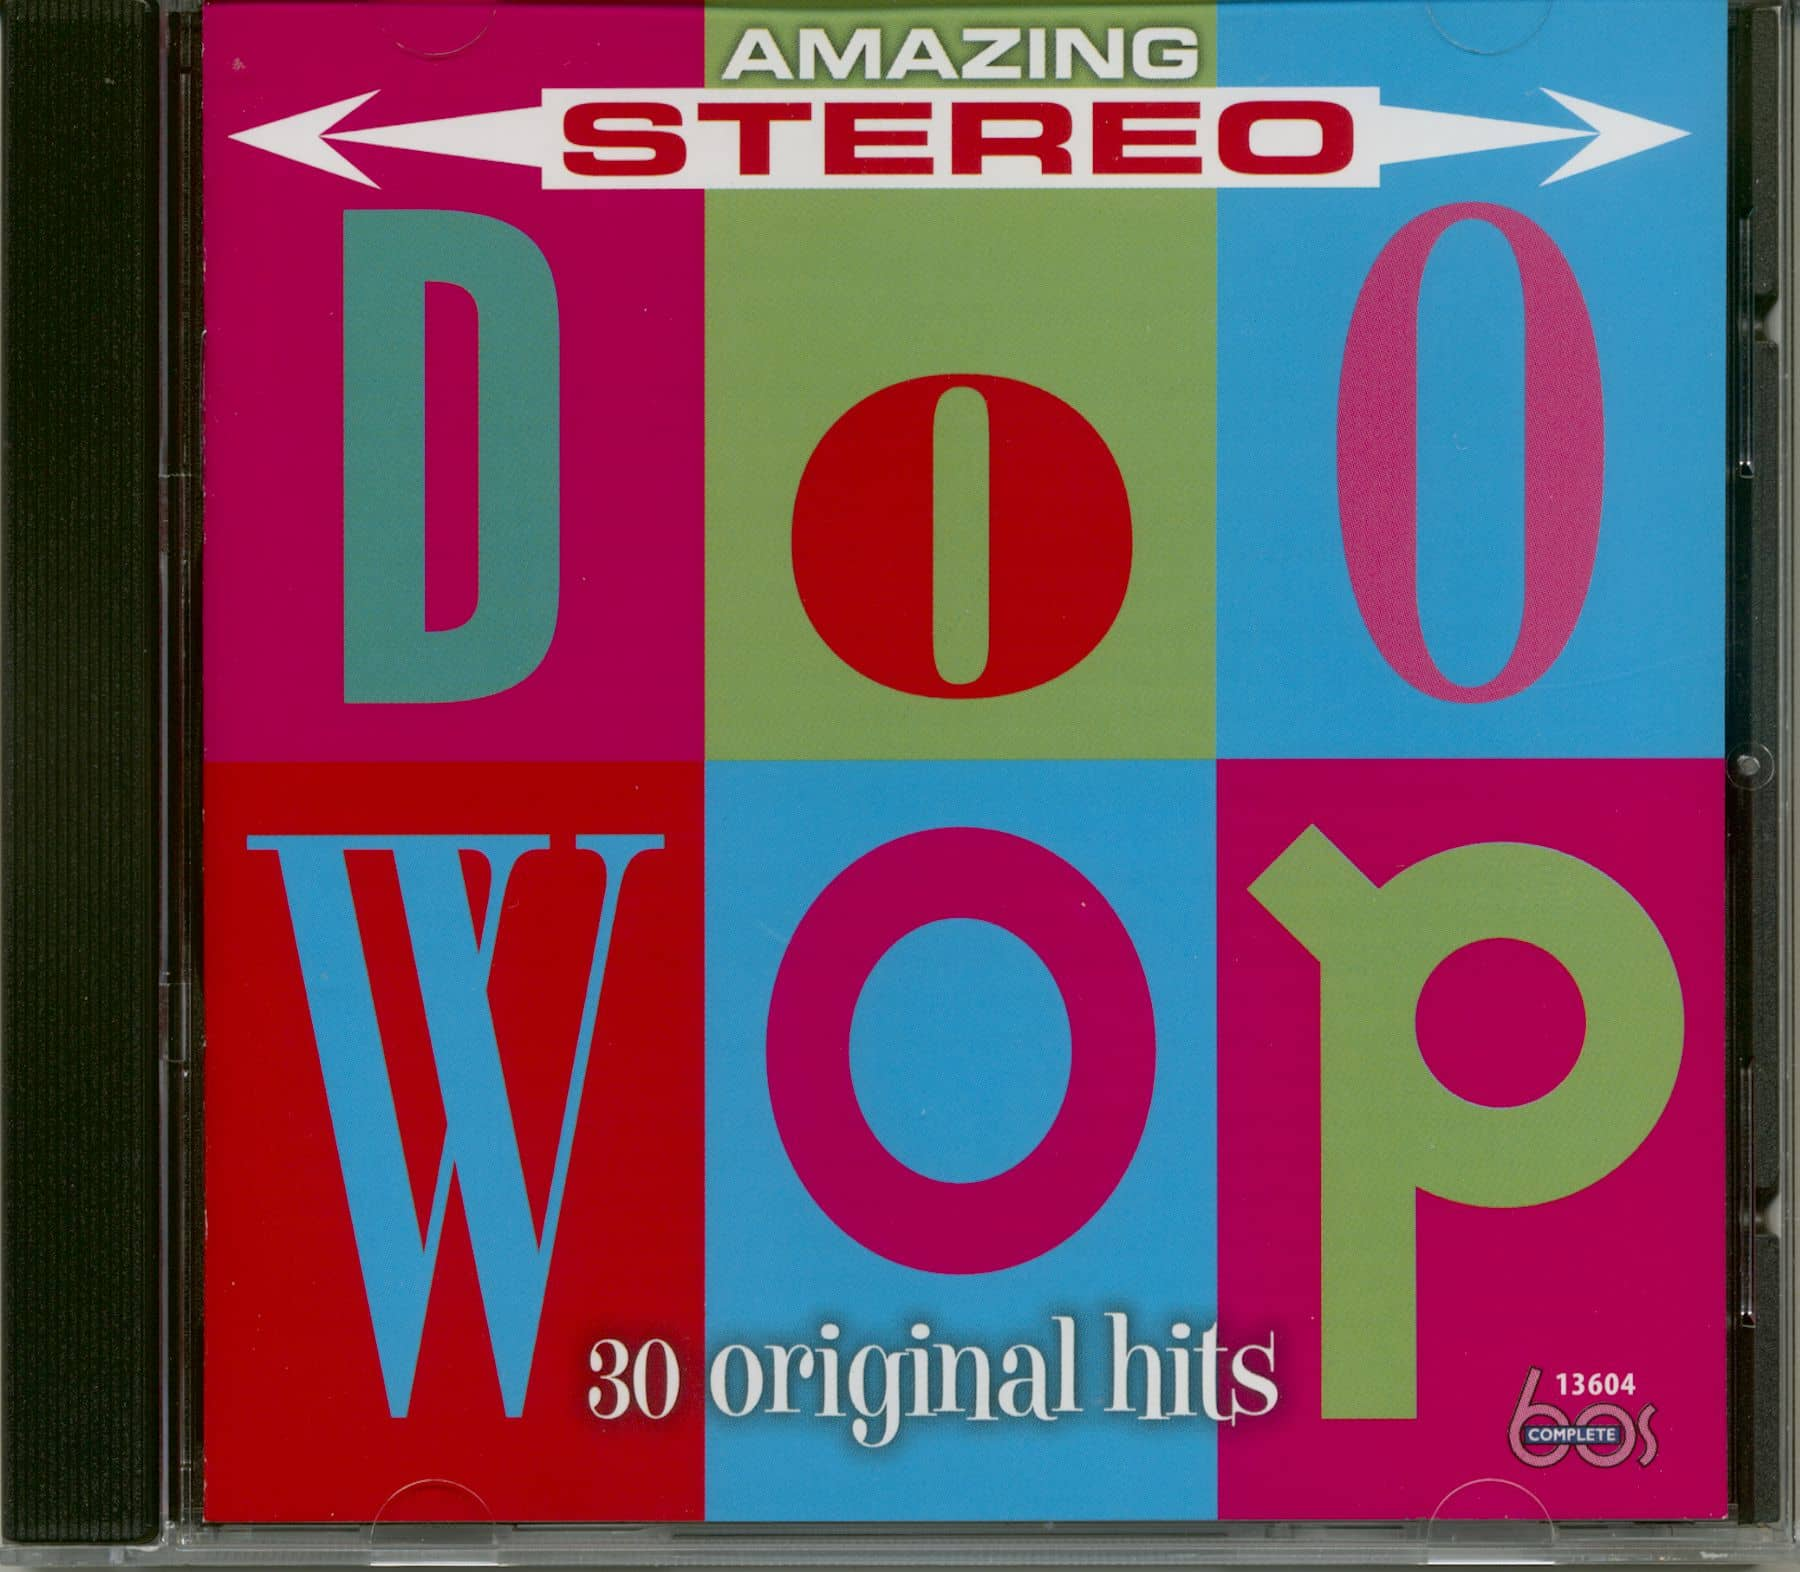 Preview Amazing Stereo Doo Wop CD